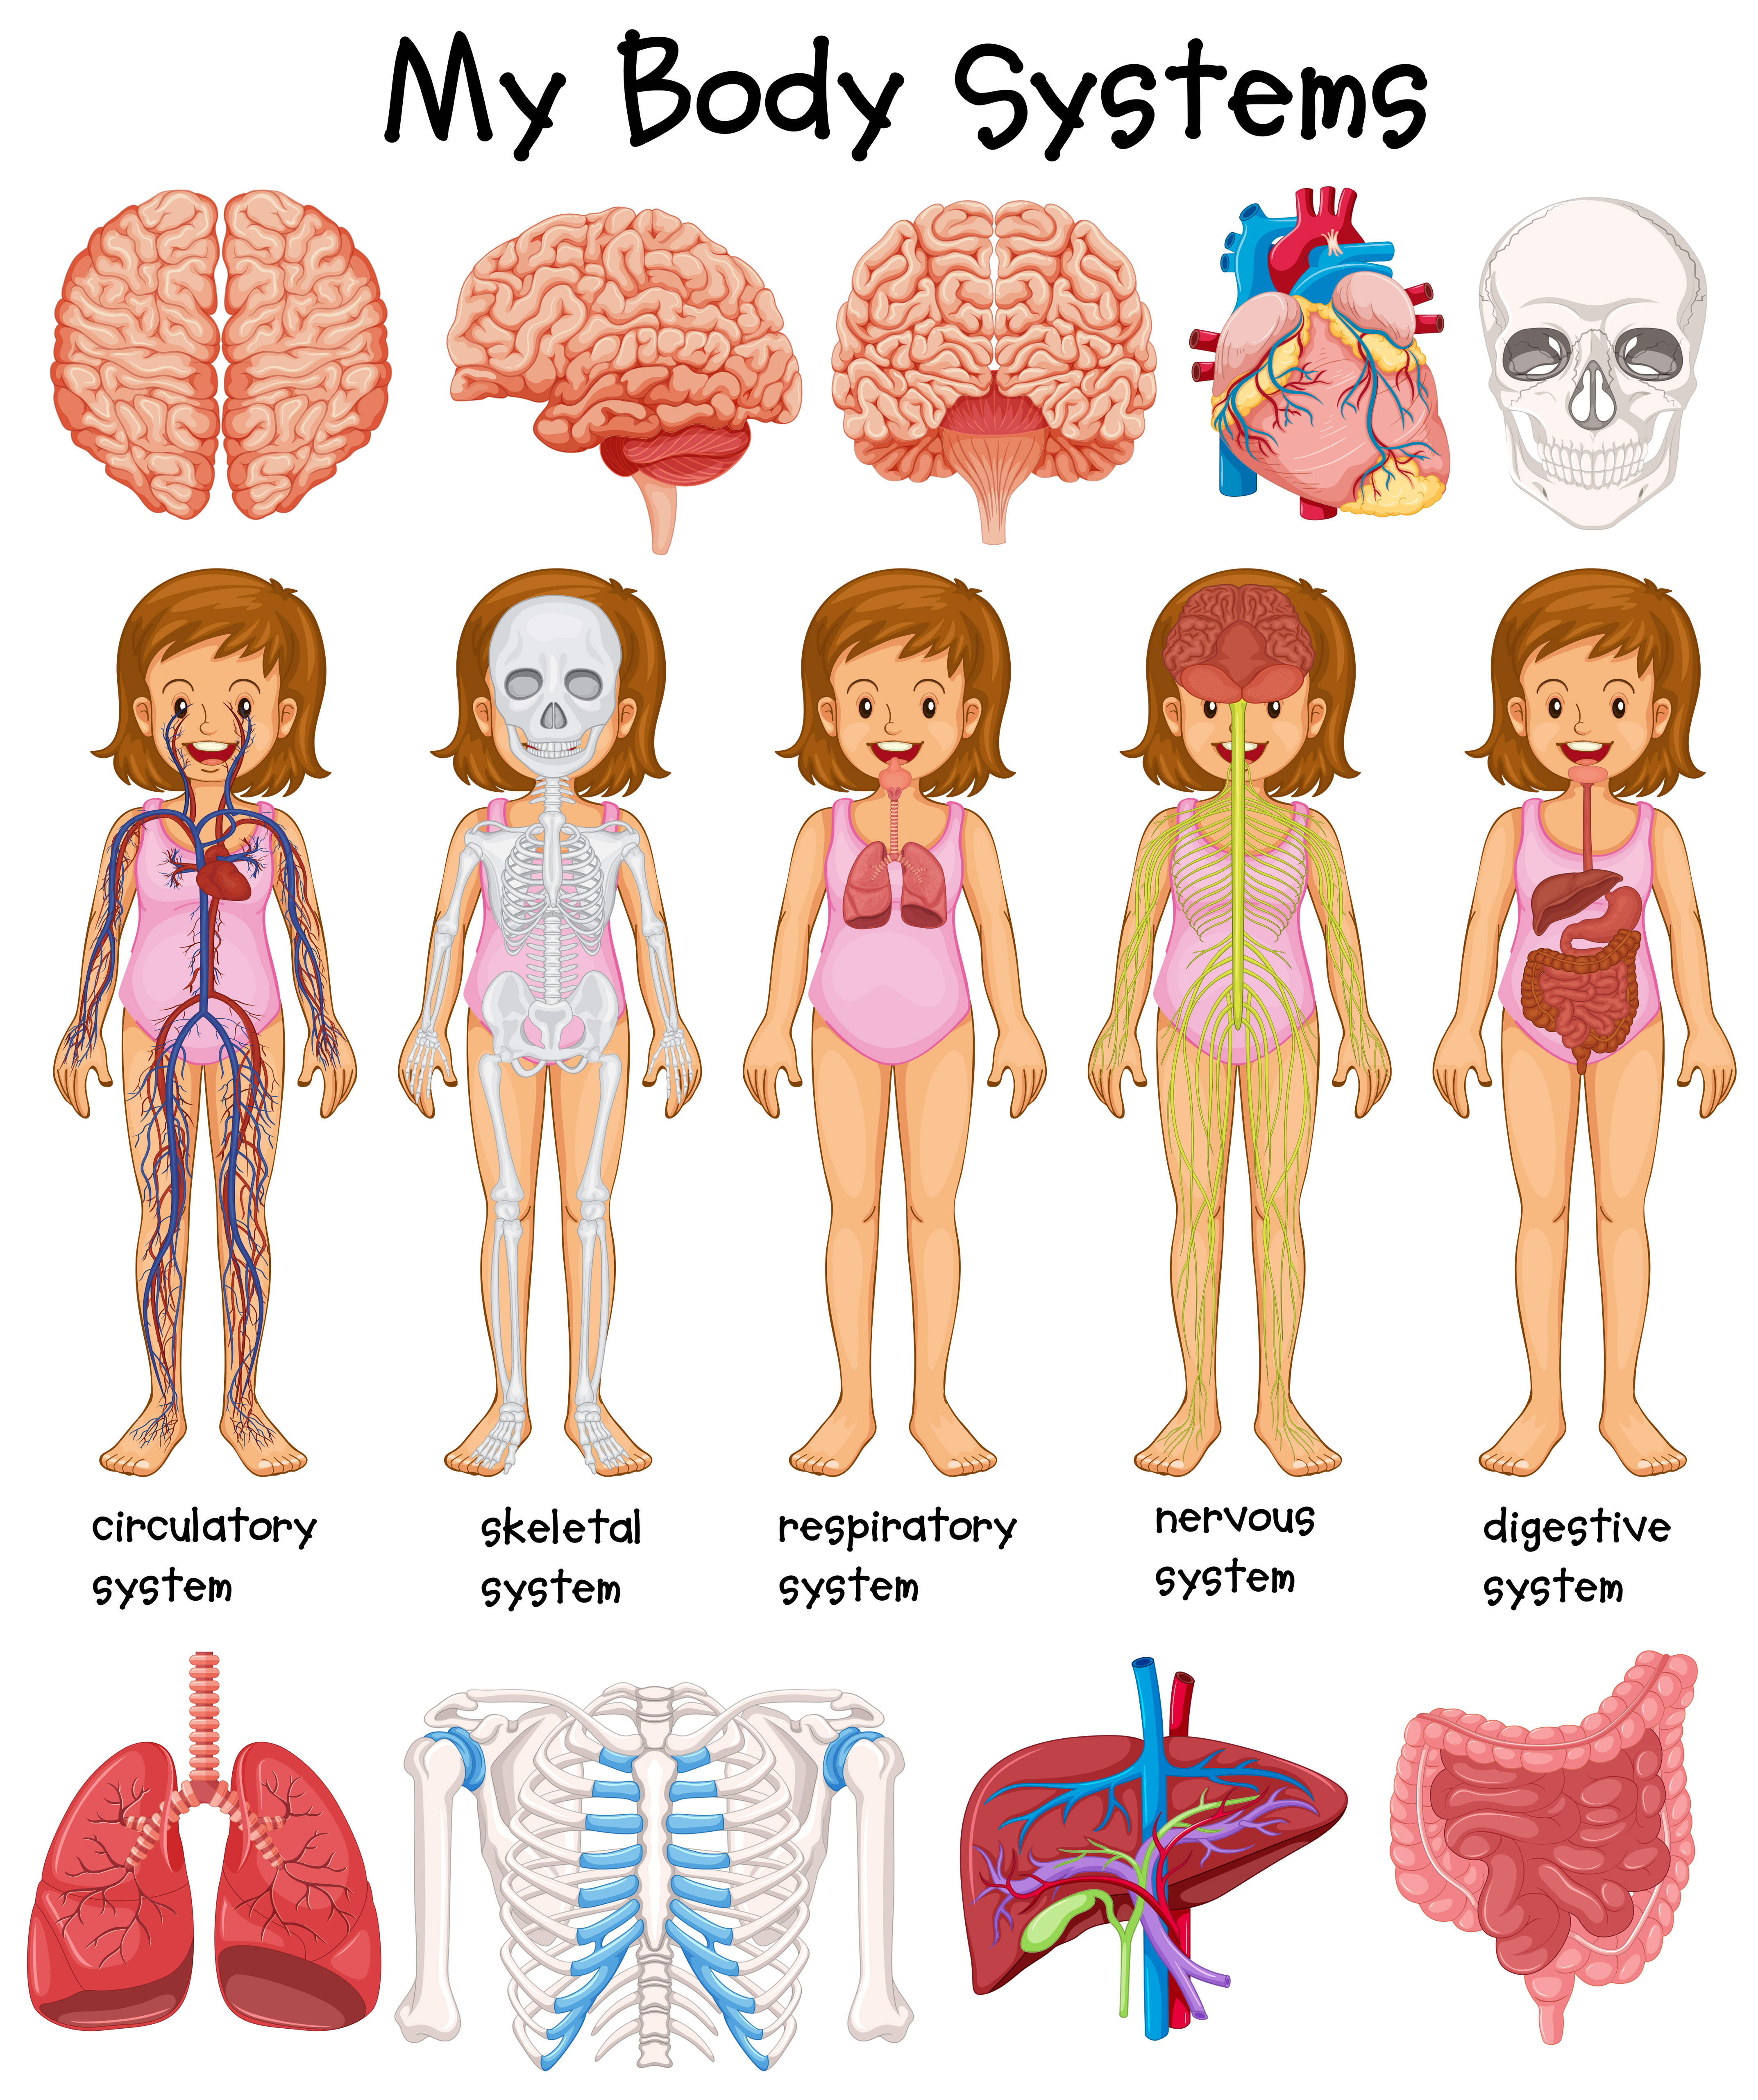 Human body systems diagram - Download Free Vectors ...